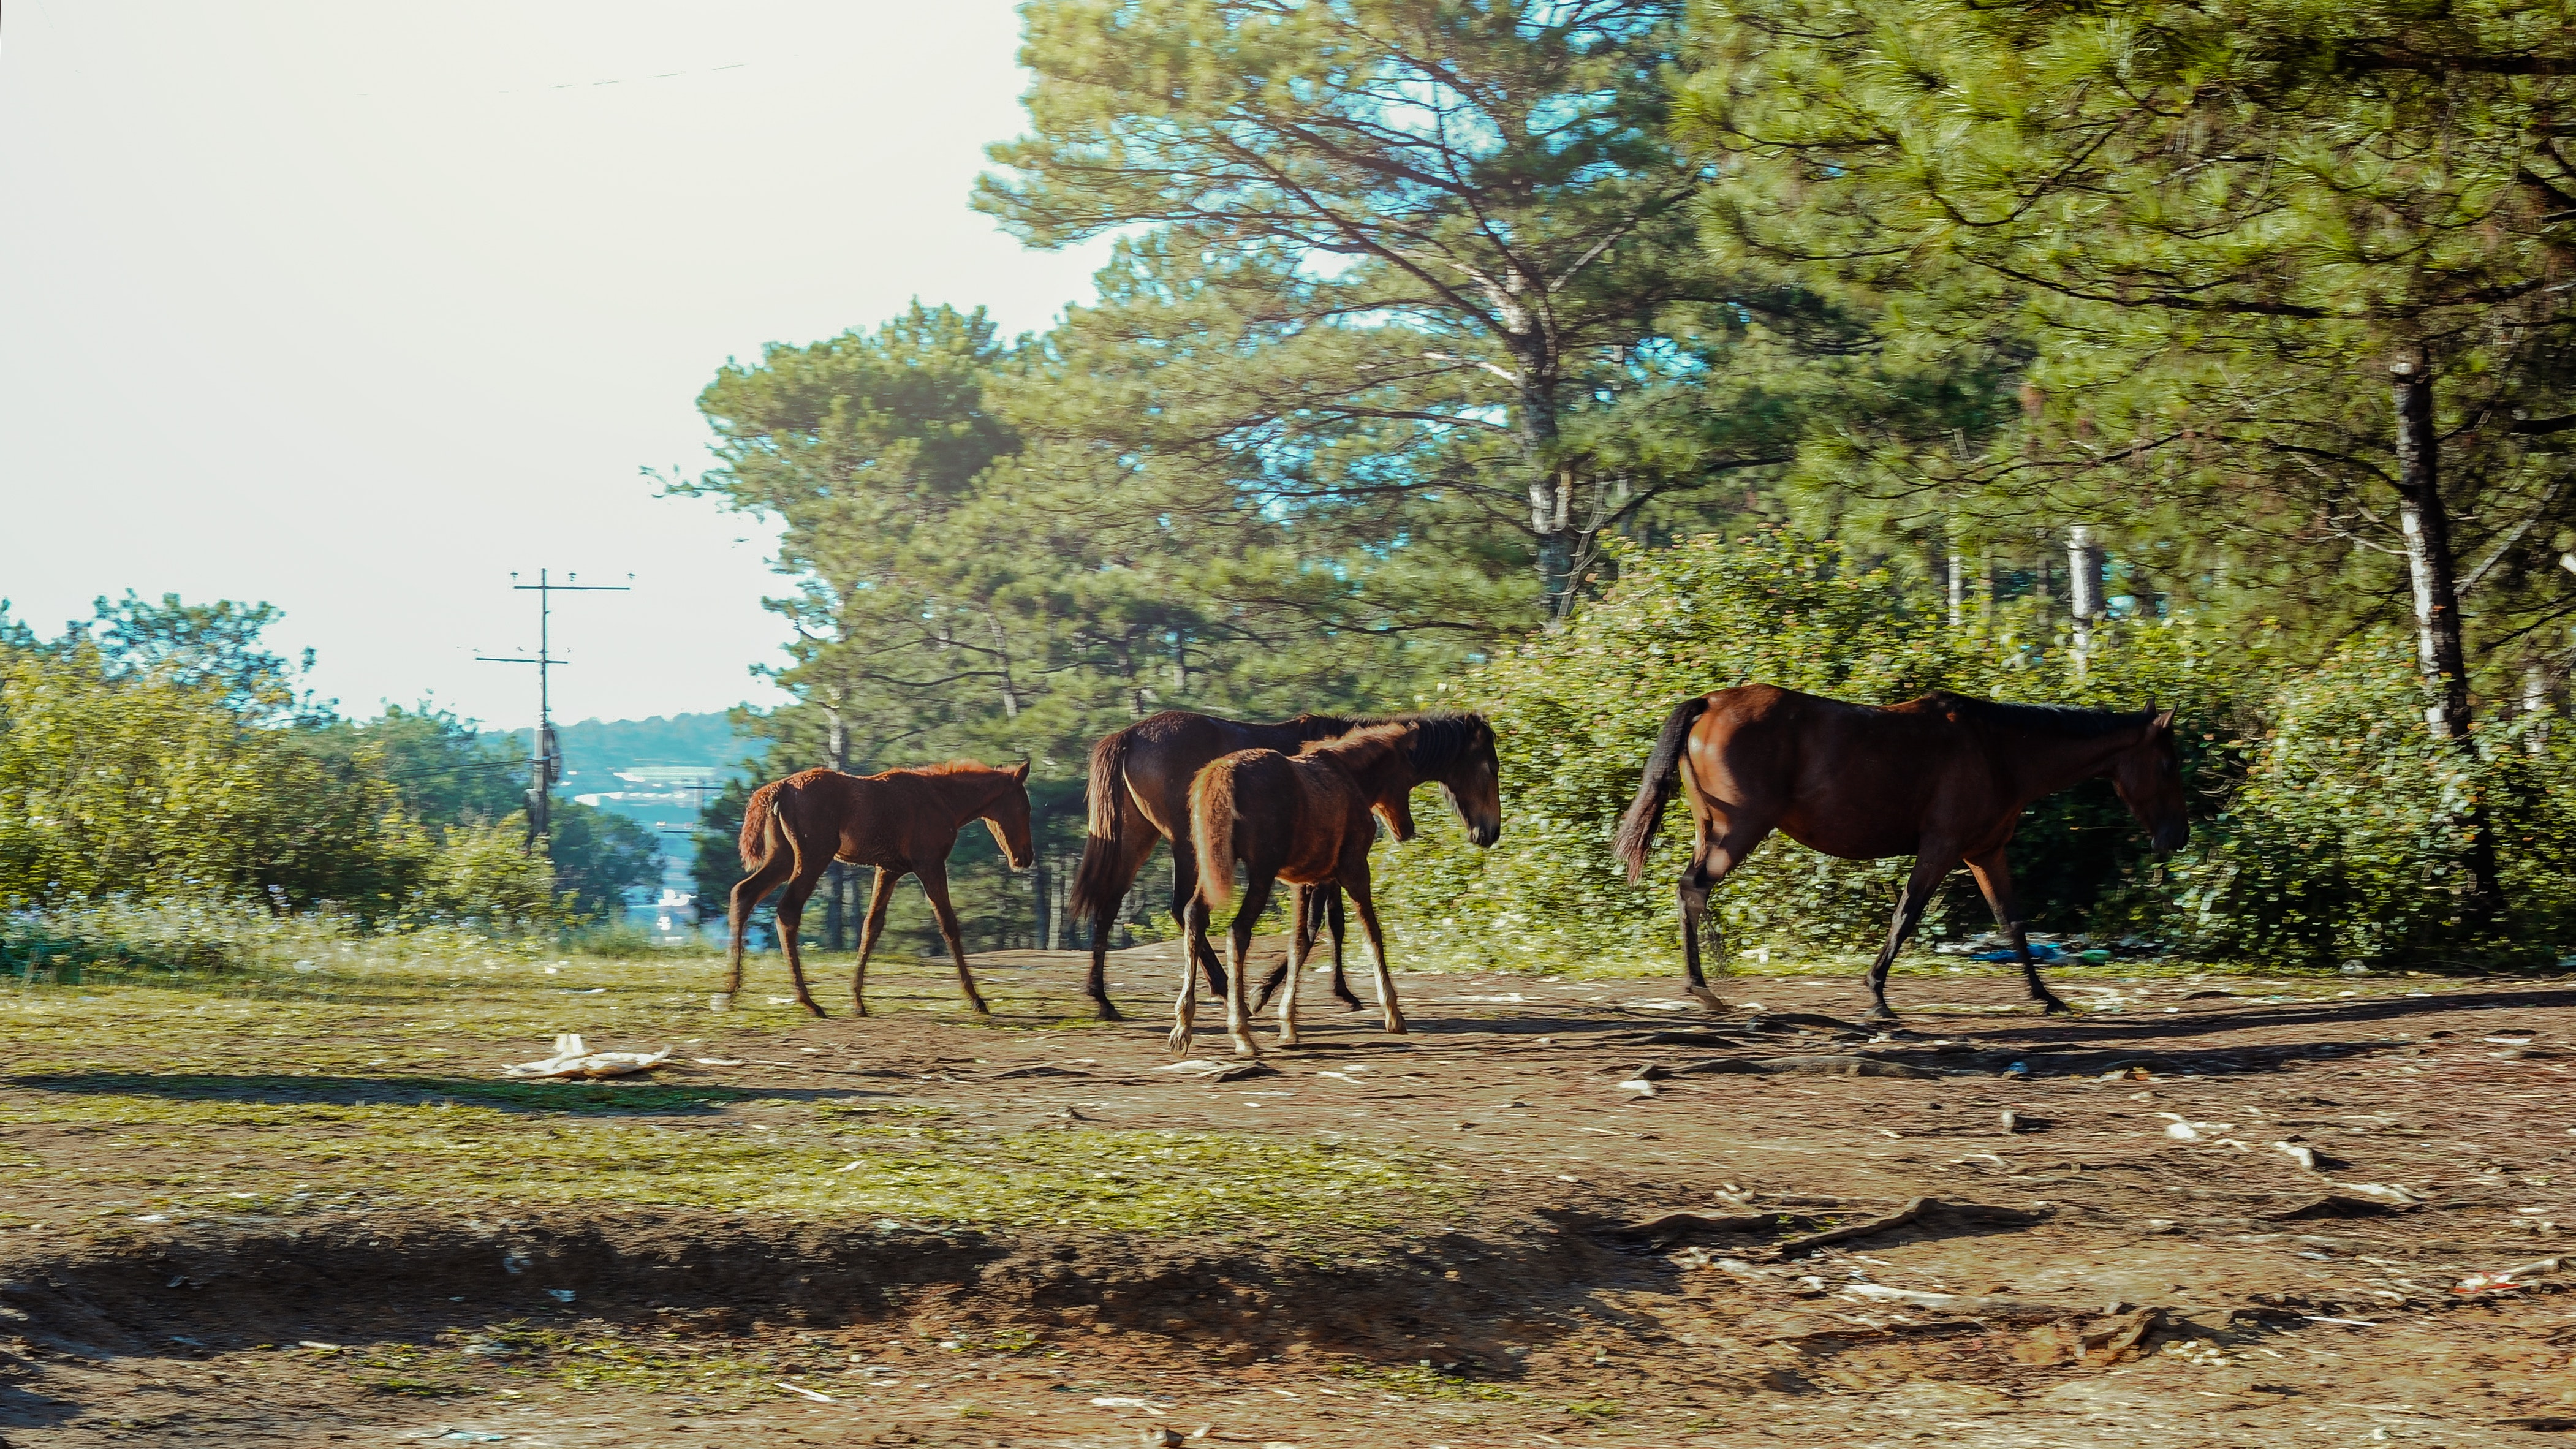 Photo of horses in the forest